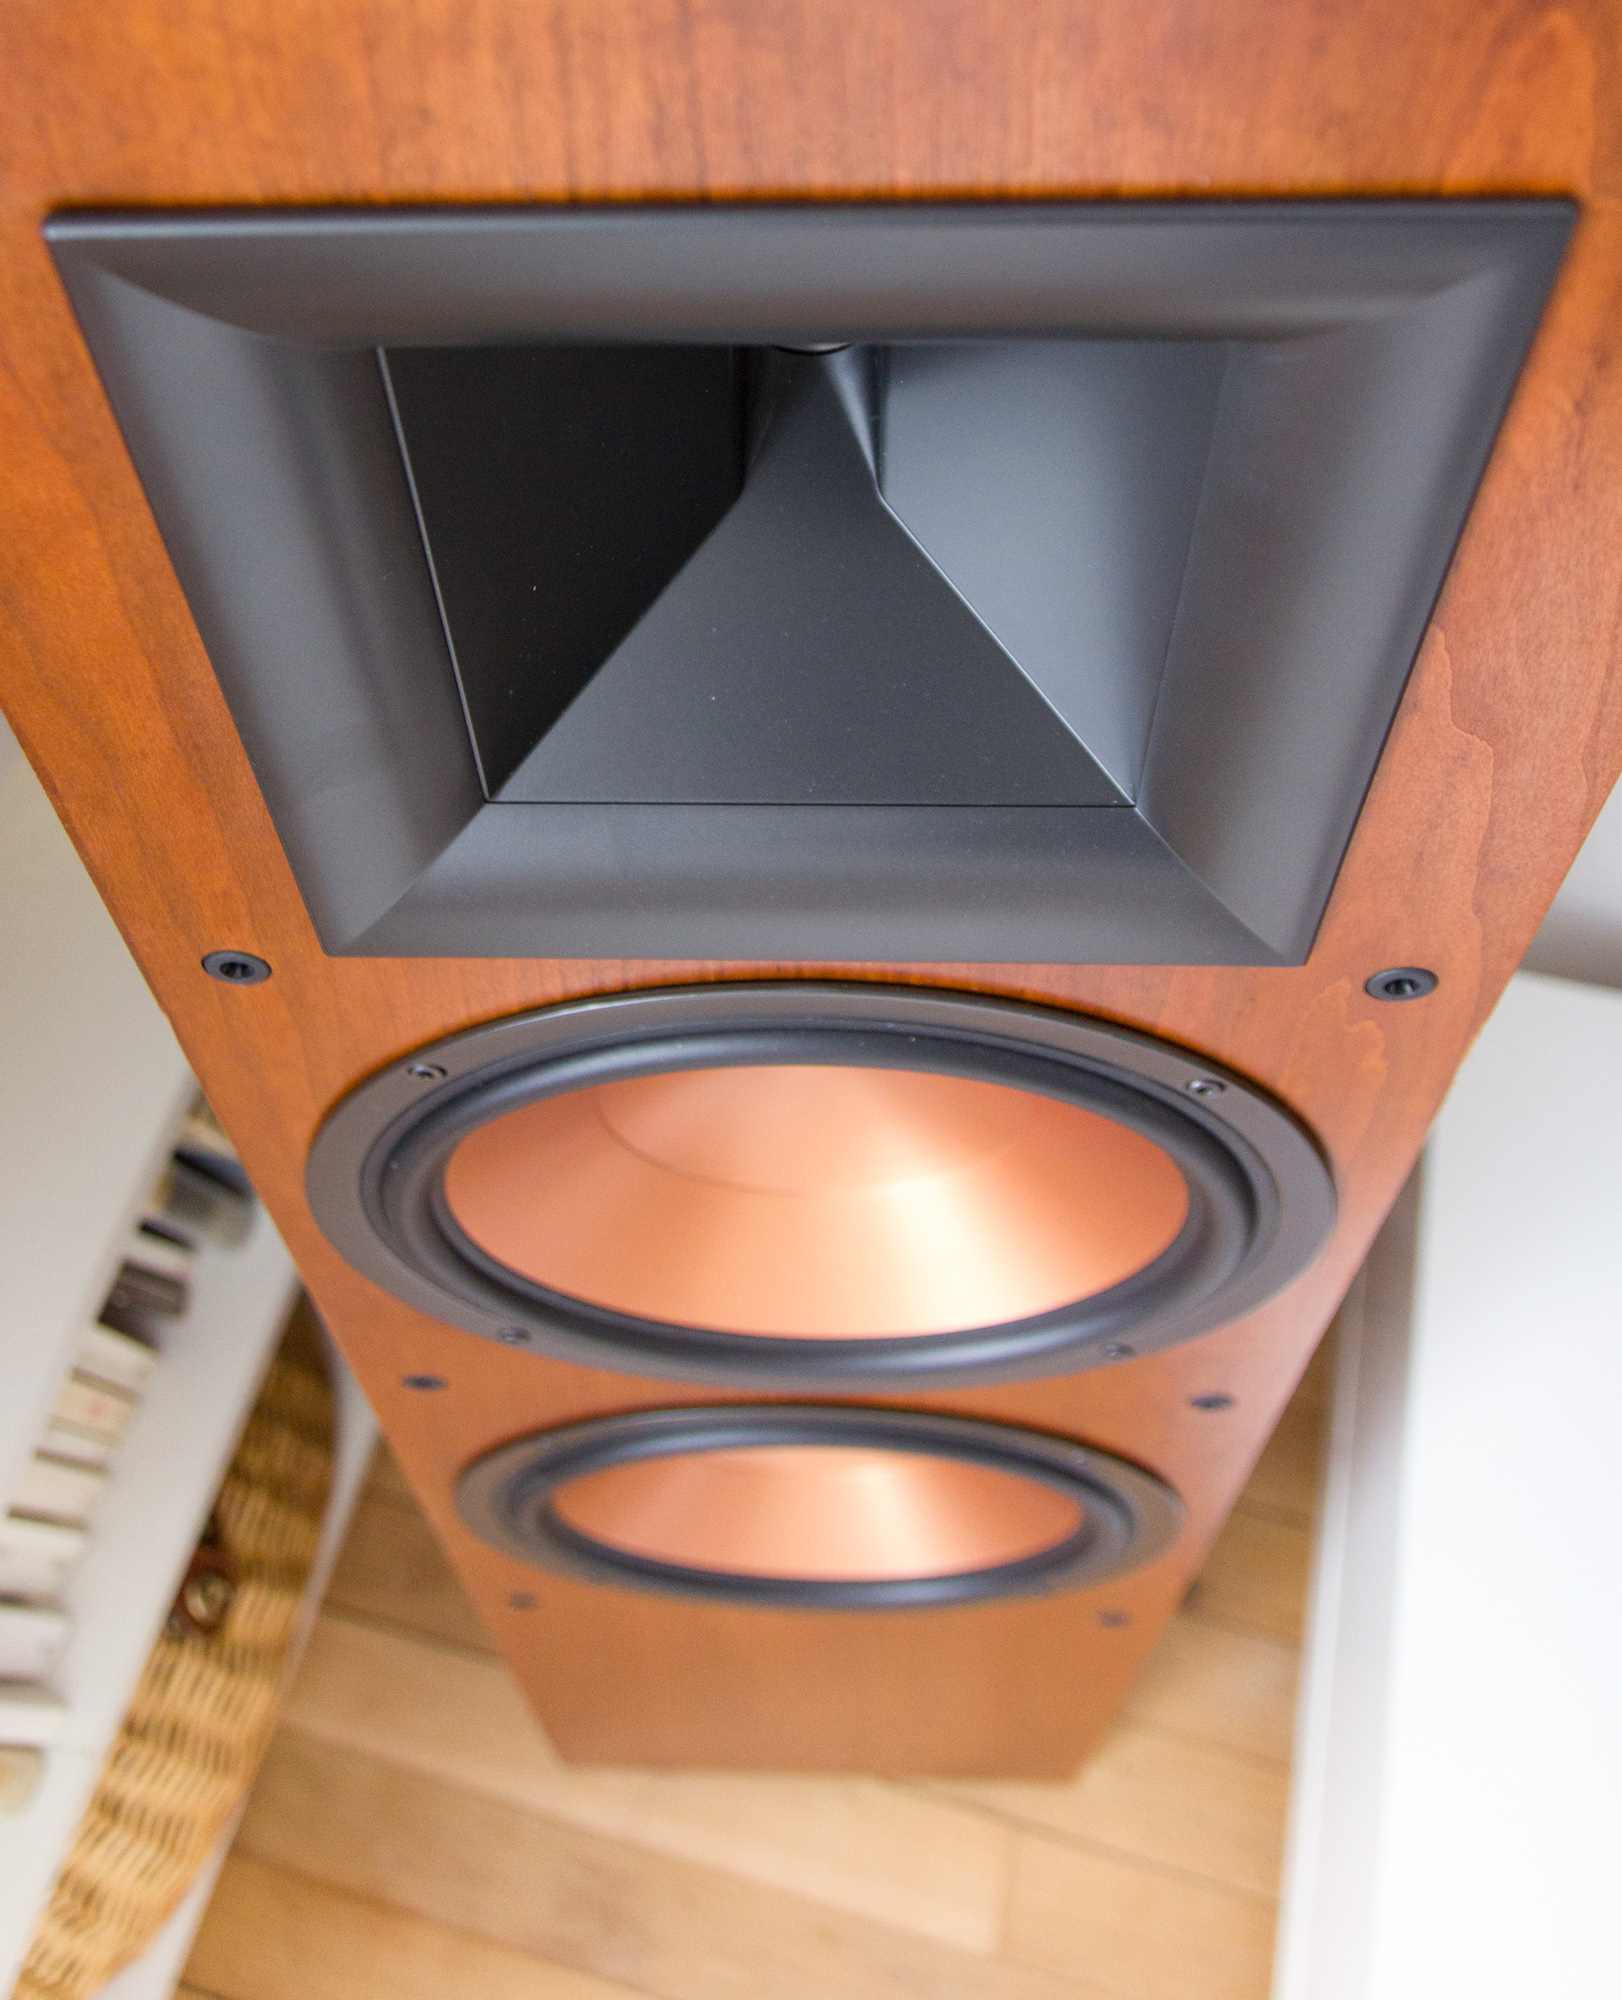 Review Klipsch Rf 7 Mkii Son Vidocom Blog Class G H Amplifiers Do They Deliver On Their Promise Of High Audio Power From The Amplifier To Same Sound Level As An Average Speaker What Is Point It Outstanding Decrease In Distortion And